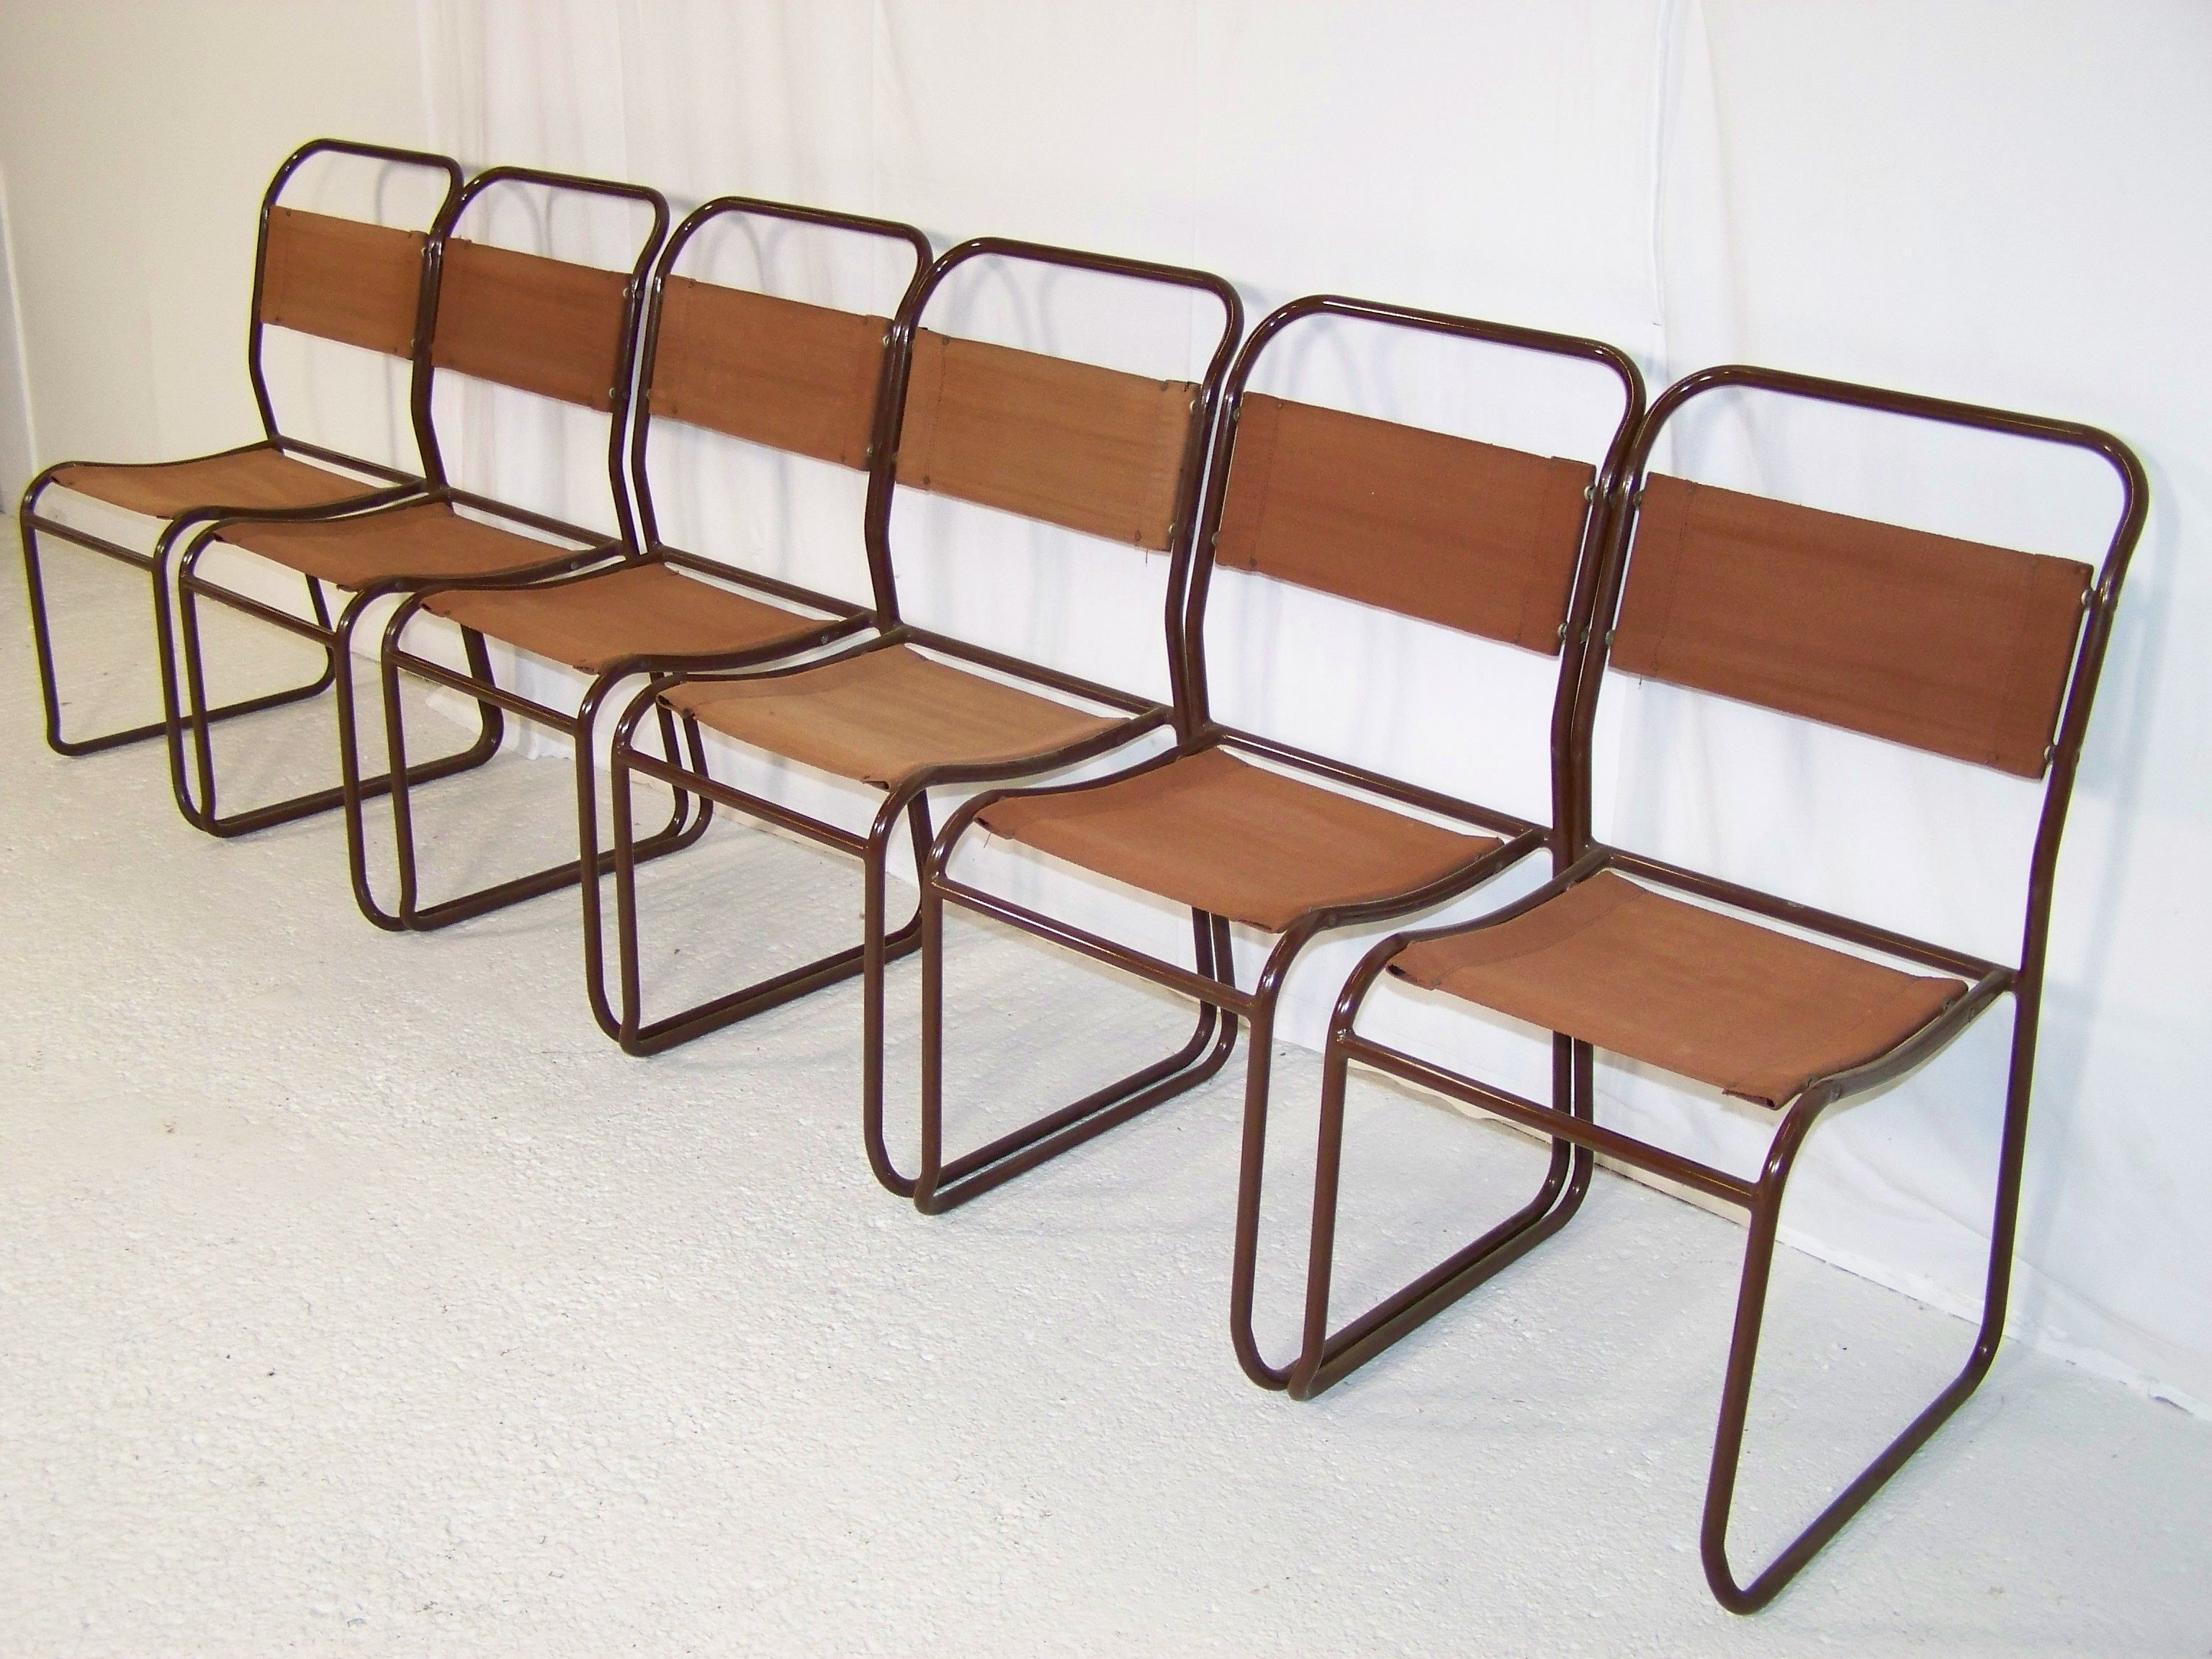 vintage bauhaus 1930s PEL stacking tubular metal and canvas chairs ...